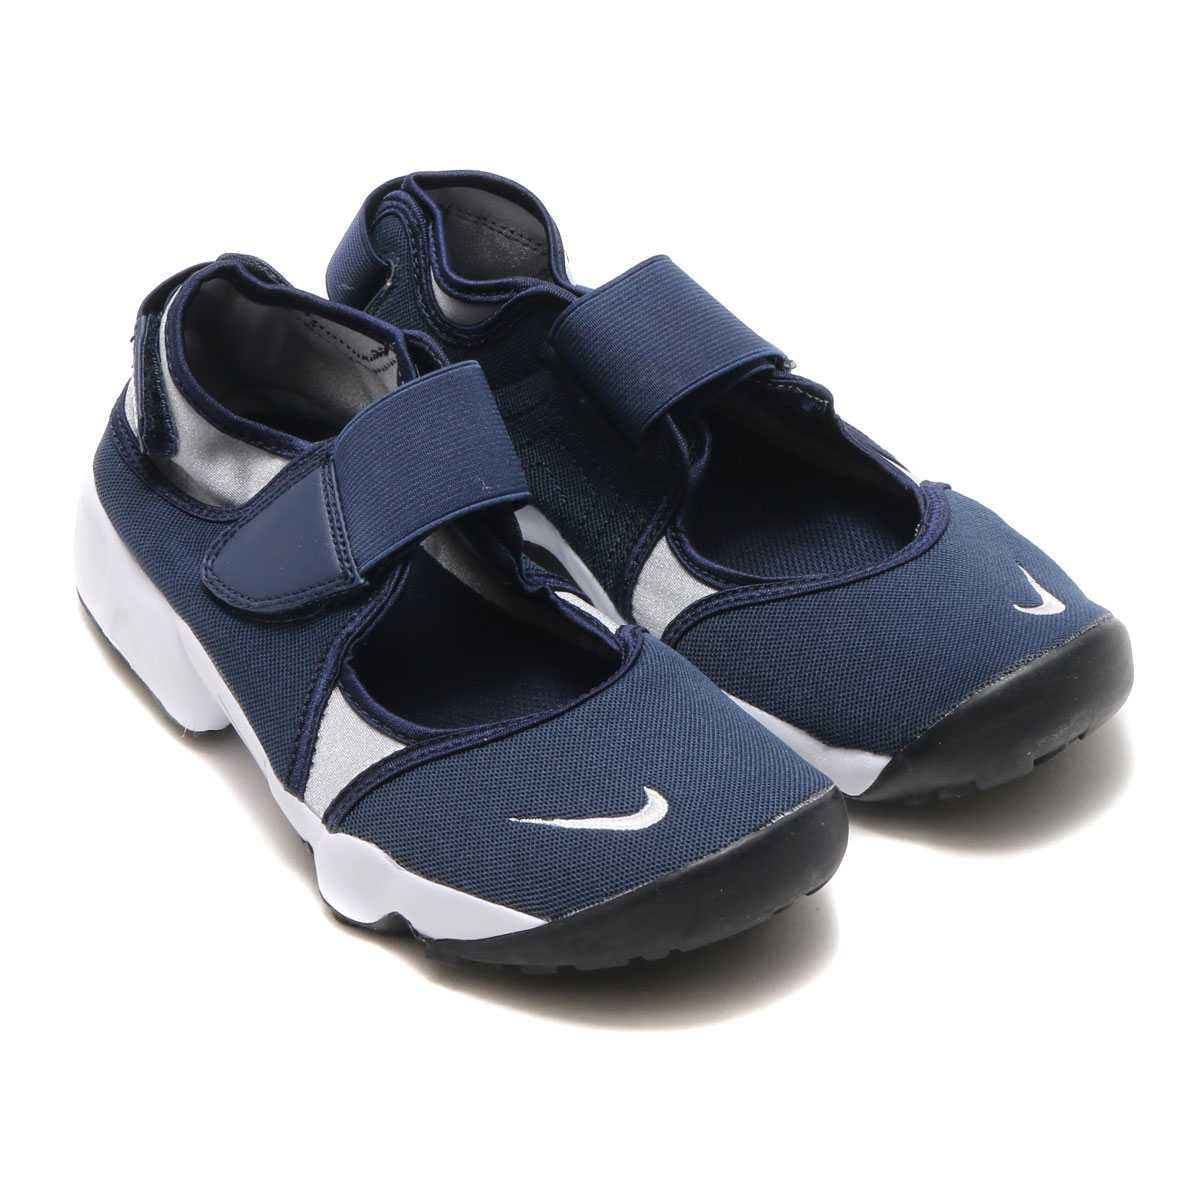 NIKE RIFT GS/PS(ナイキ リフト GS/PS)(OBSIDIAN/WHITE-WOLF GREY)【キッズ スニーカー】19SU-I